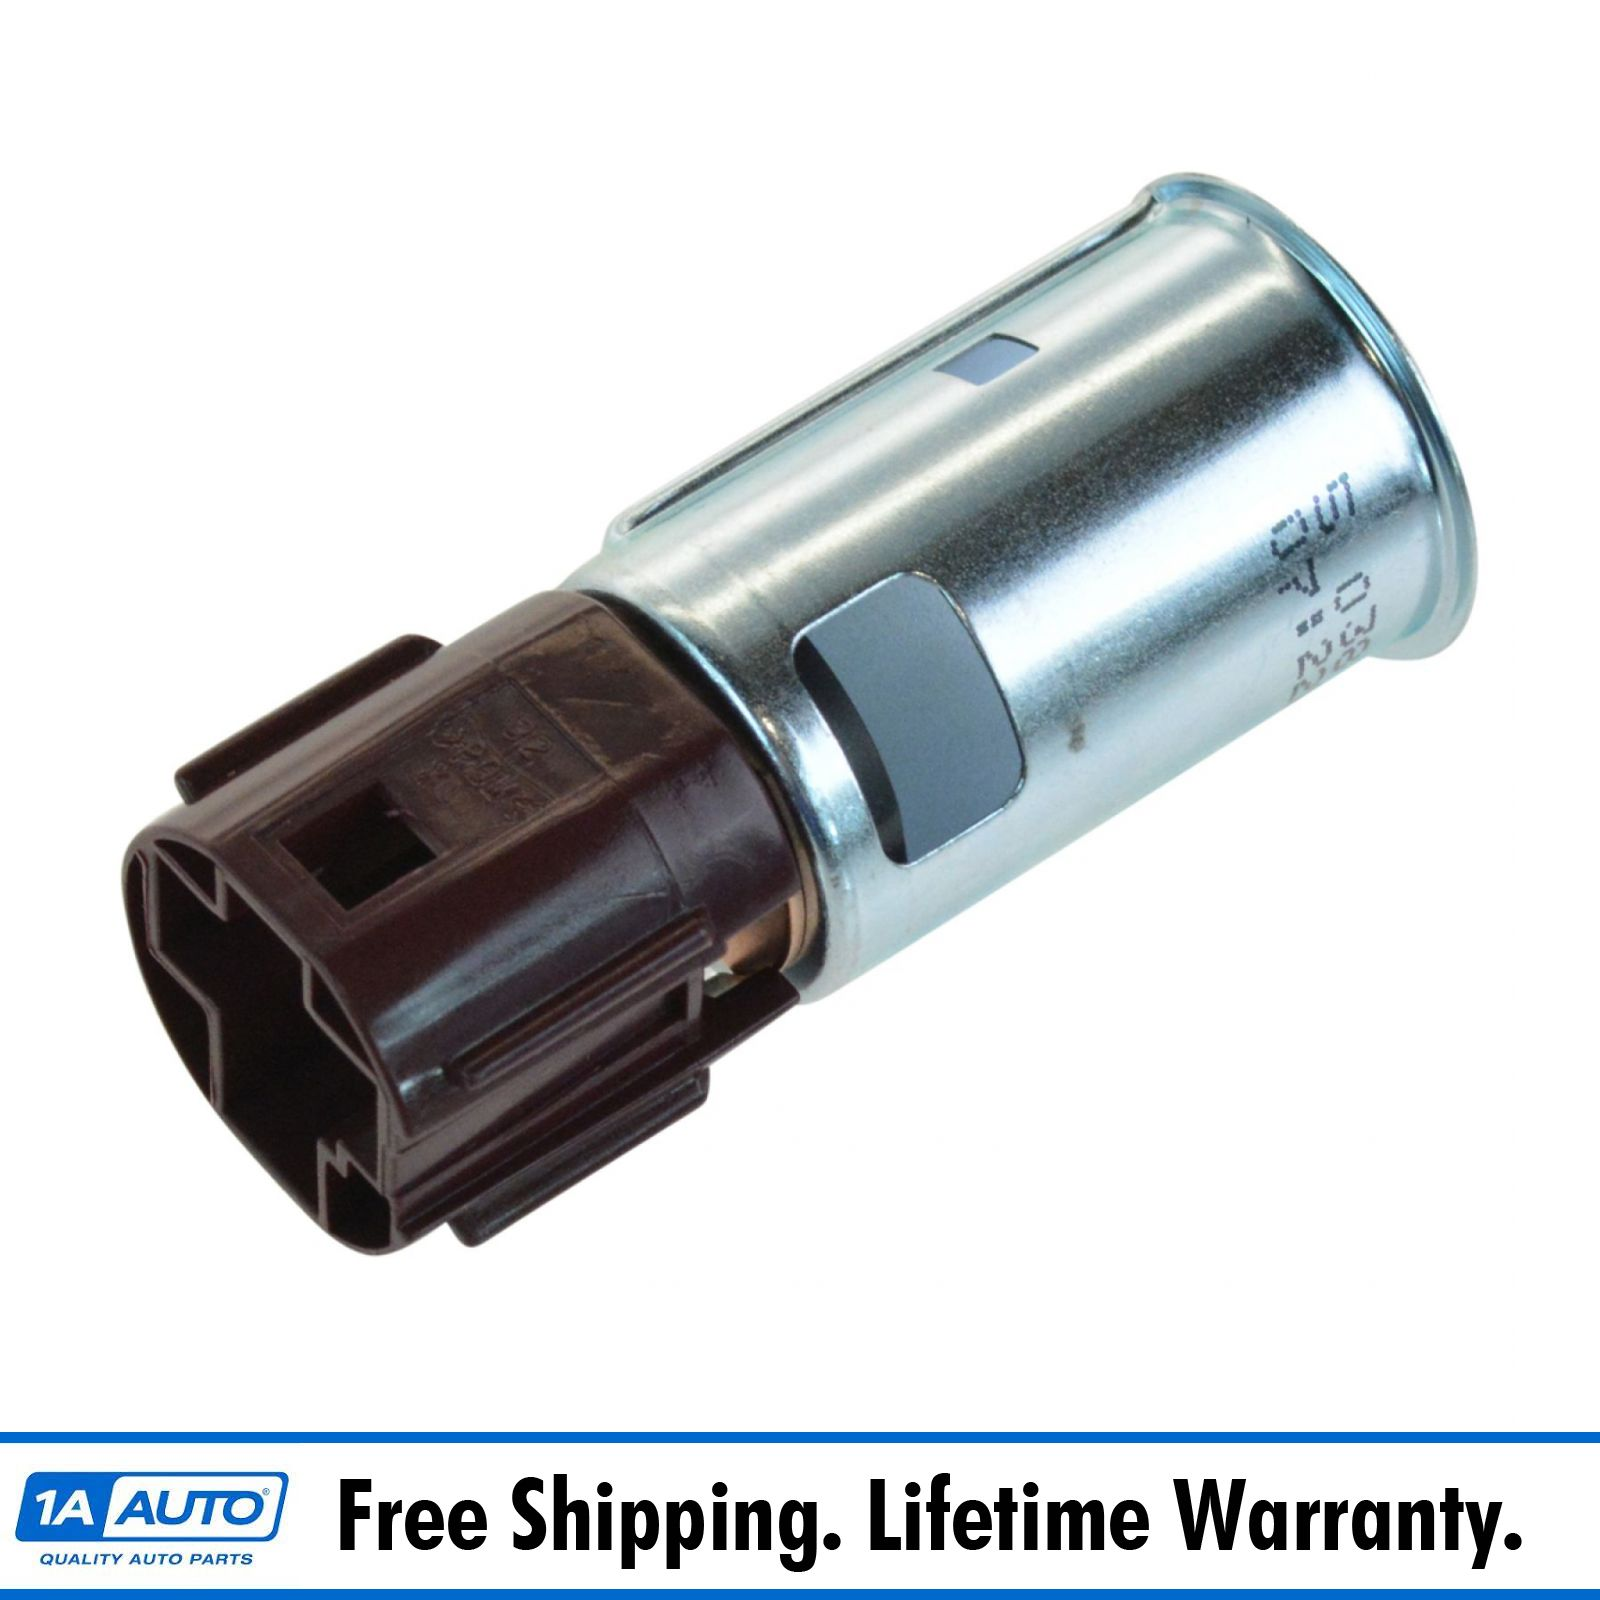 Oem 25774623 12 Volt Auxiliary Accessory Power Outlet